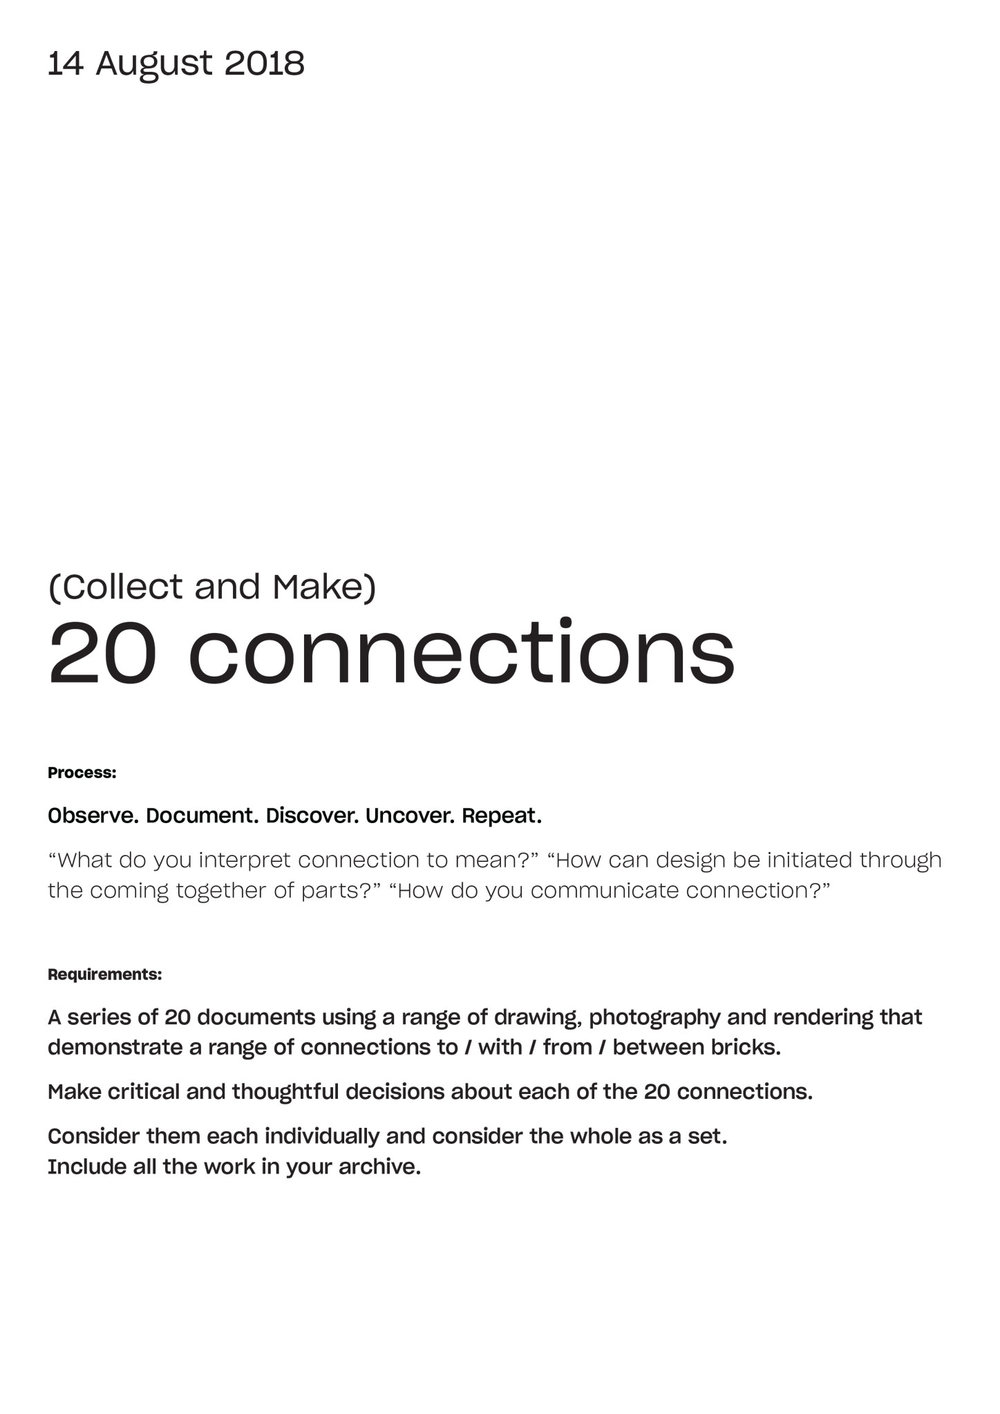 20-connections.jpg